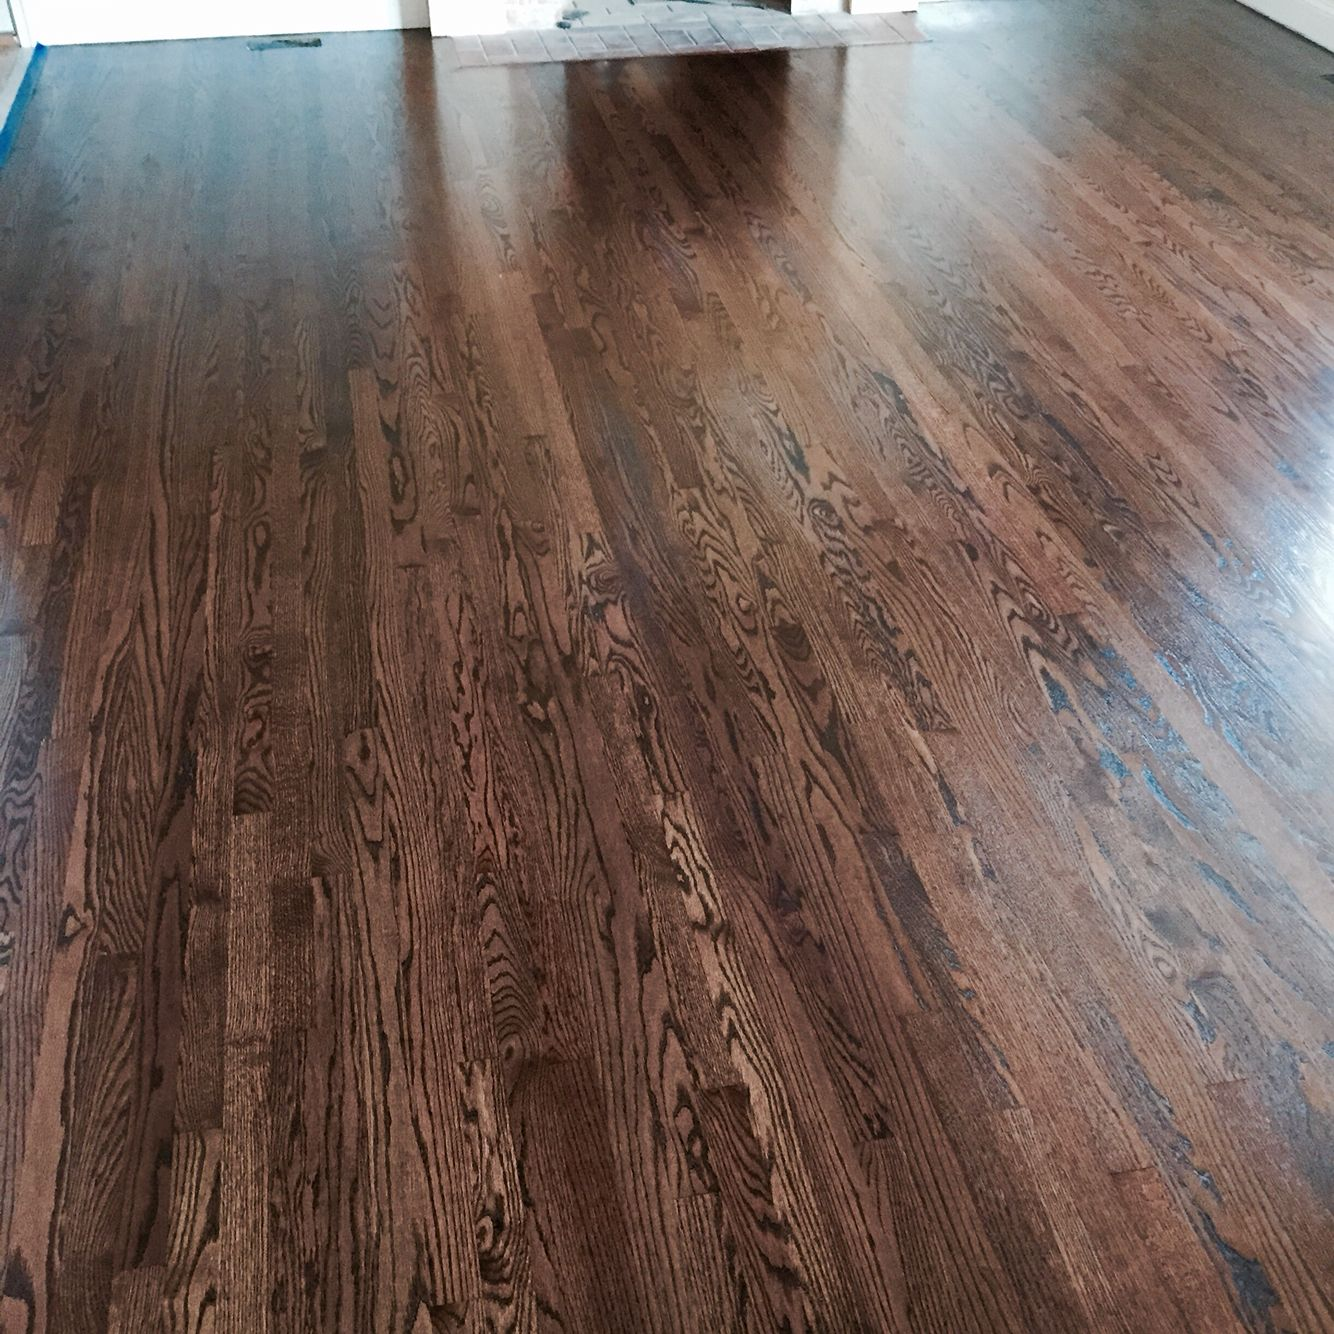 Refinished Red Oak With Antique Brown Stain And Finished With Bona